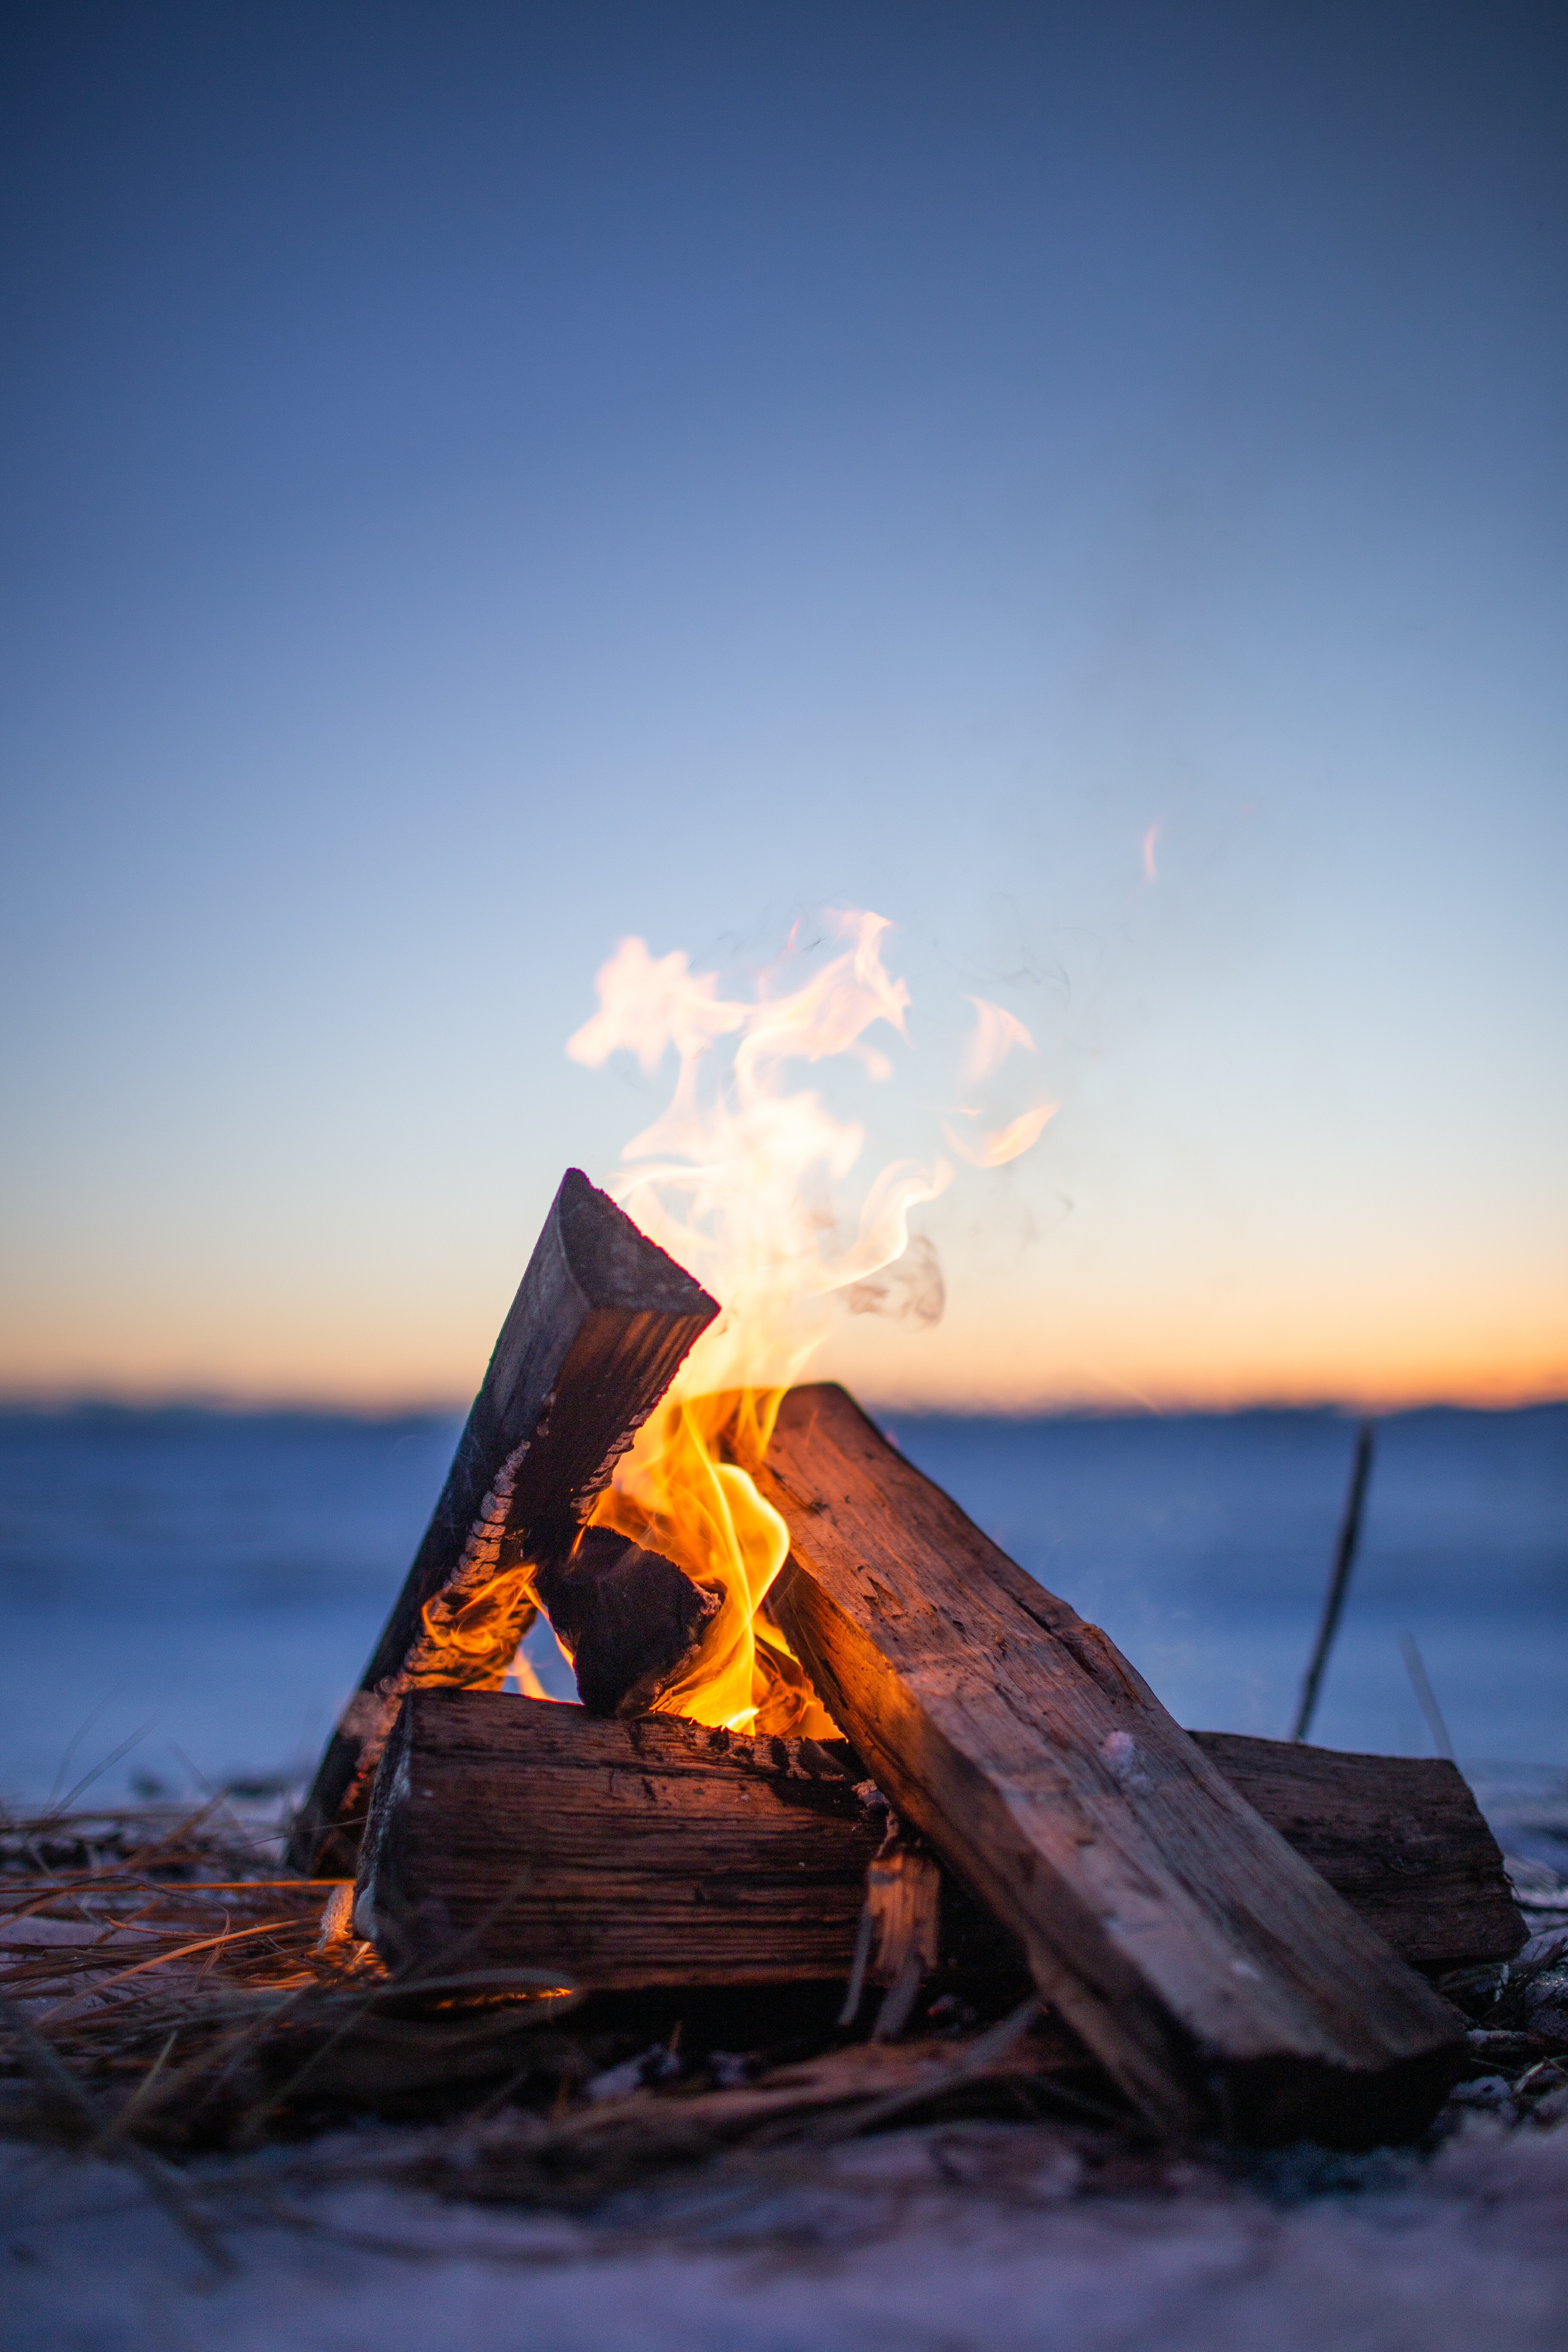 139994 Screensavers and Wallpapers Firewood for phone. Download Fire, Bonfire, Flame, Miscellanea, Miscellaneous, Evening, Firewood, Camping, Campsite pictures for free